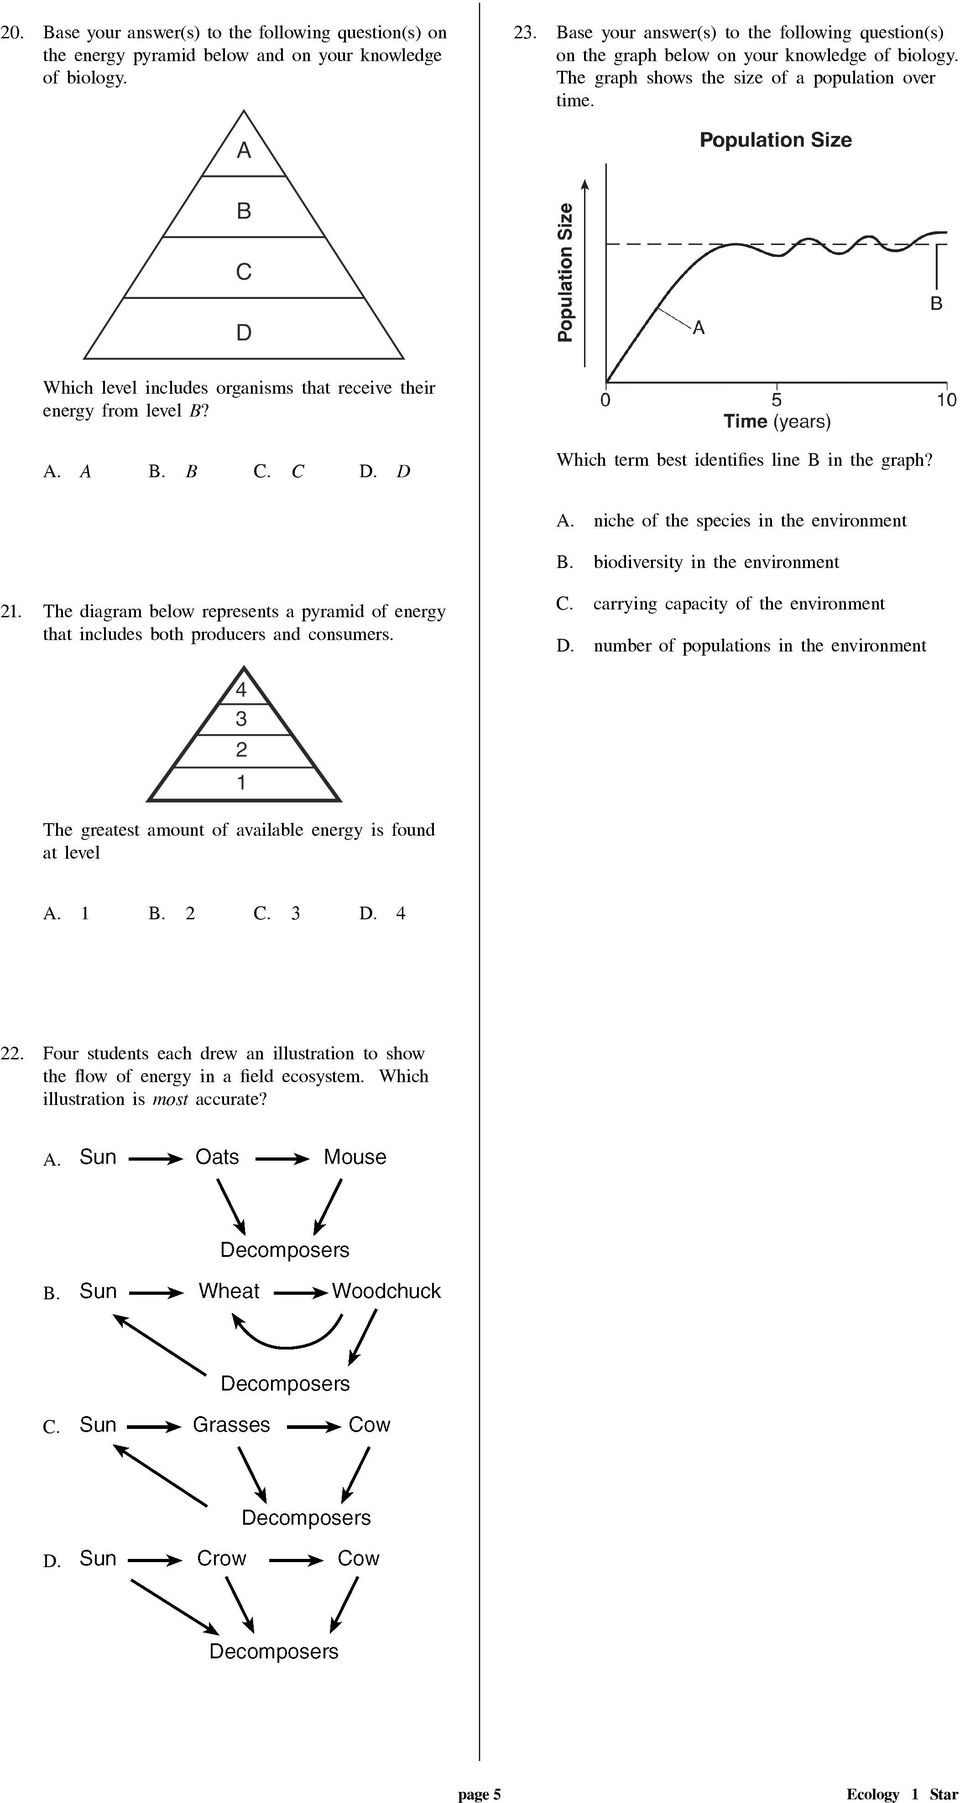 Population Ecology Graph Worksheet Ecology 1 Star 1 Missing From the Diagram Of This